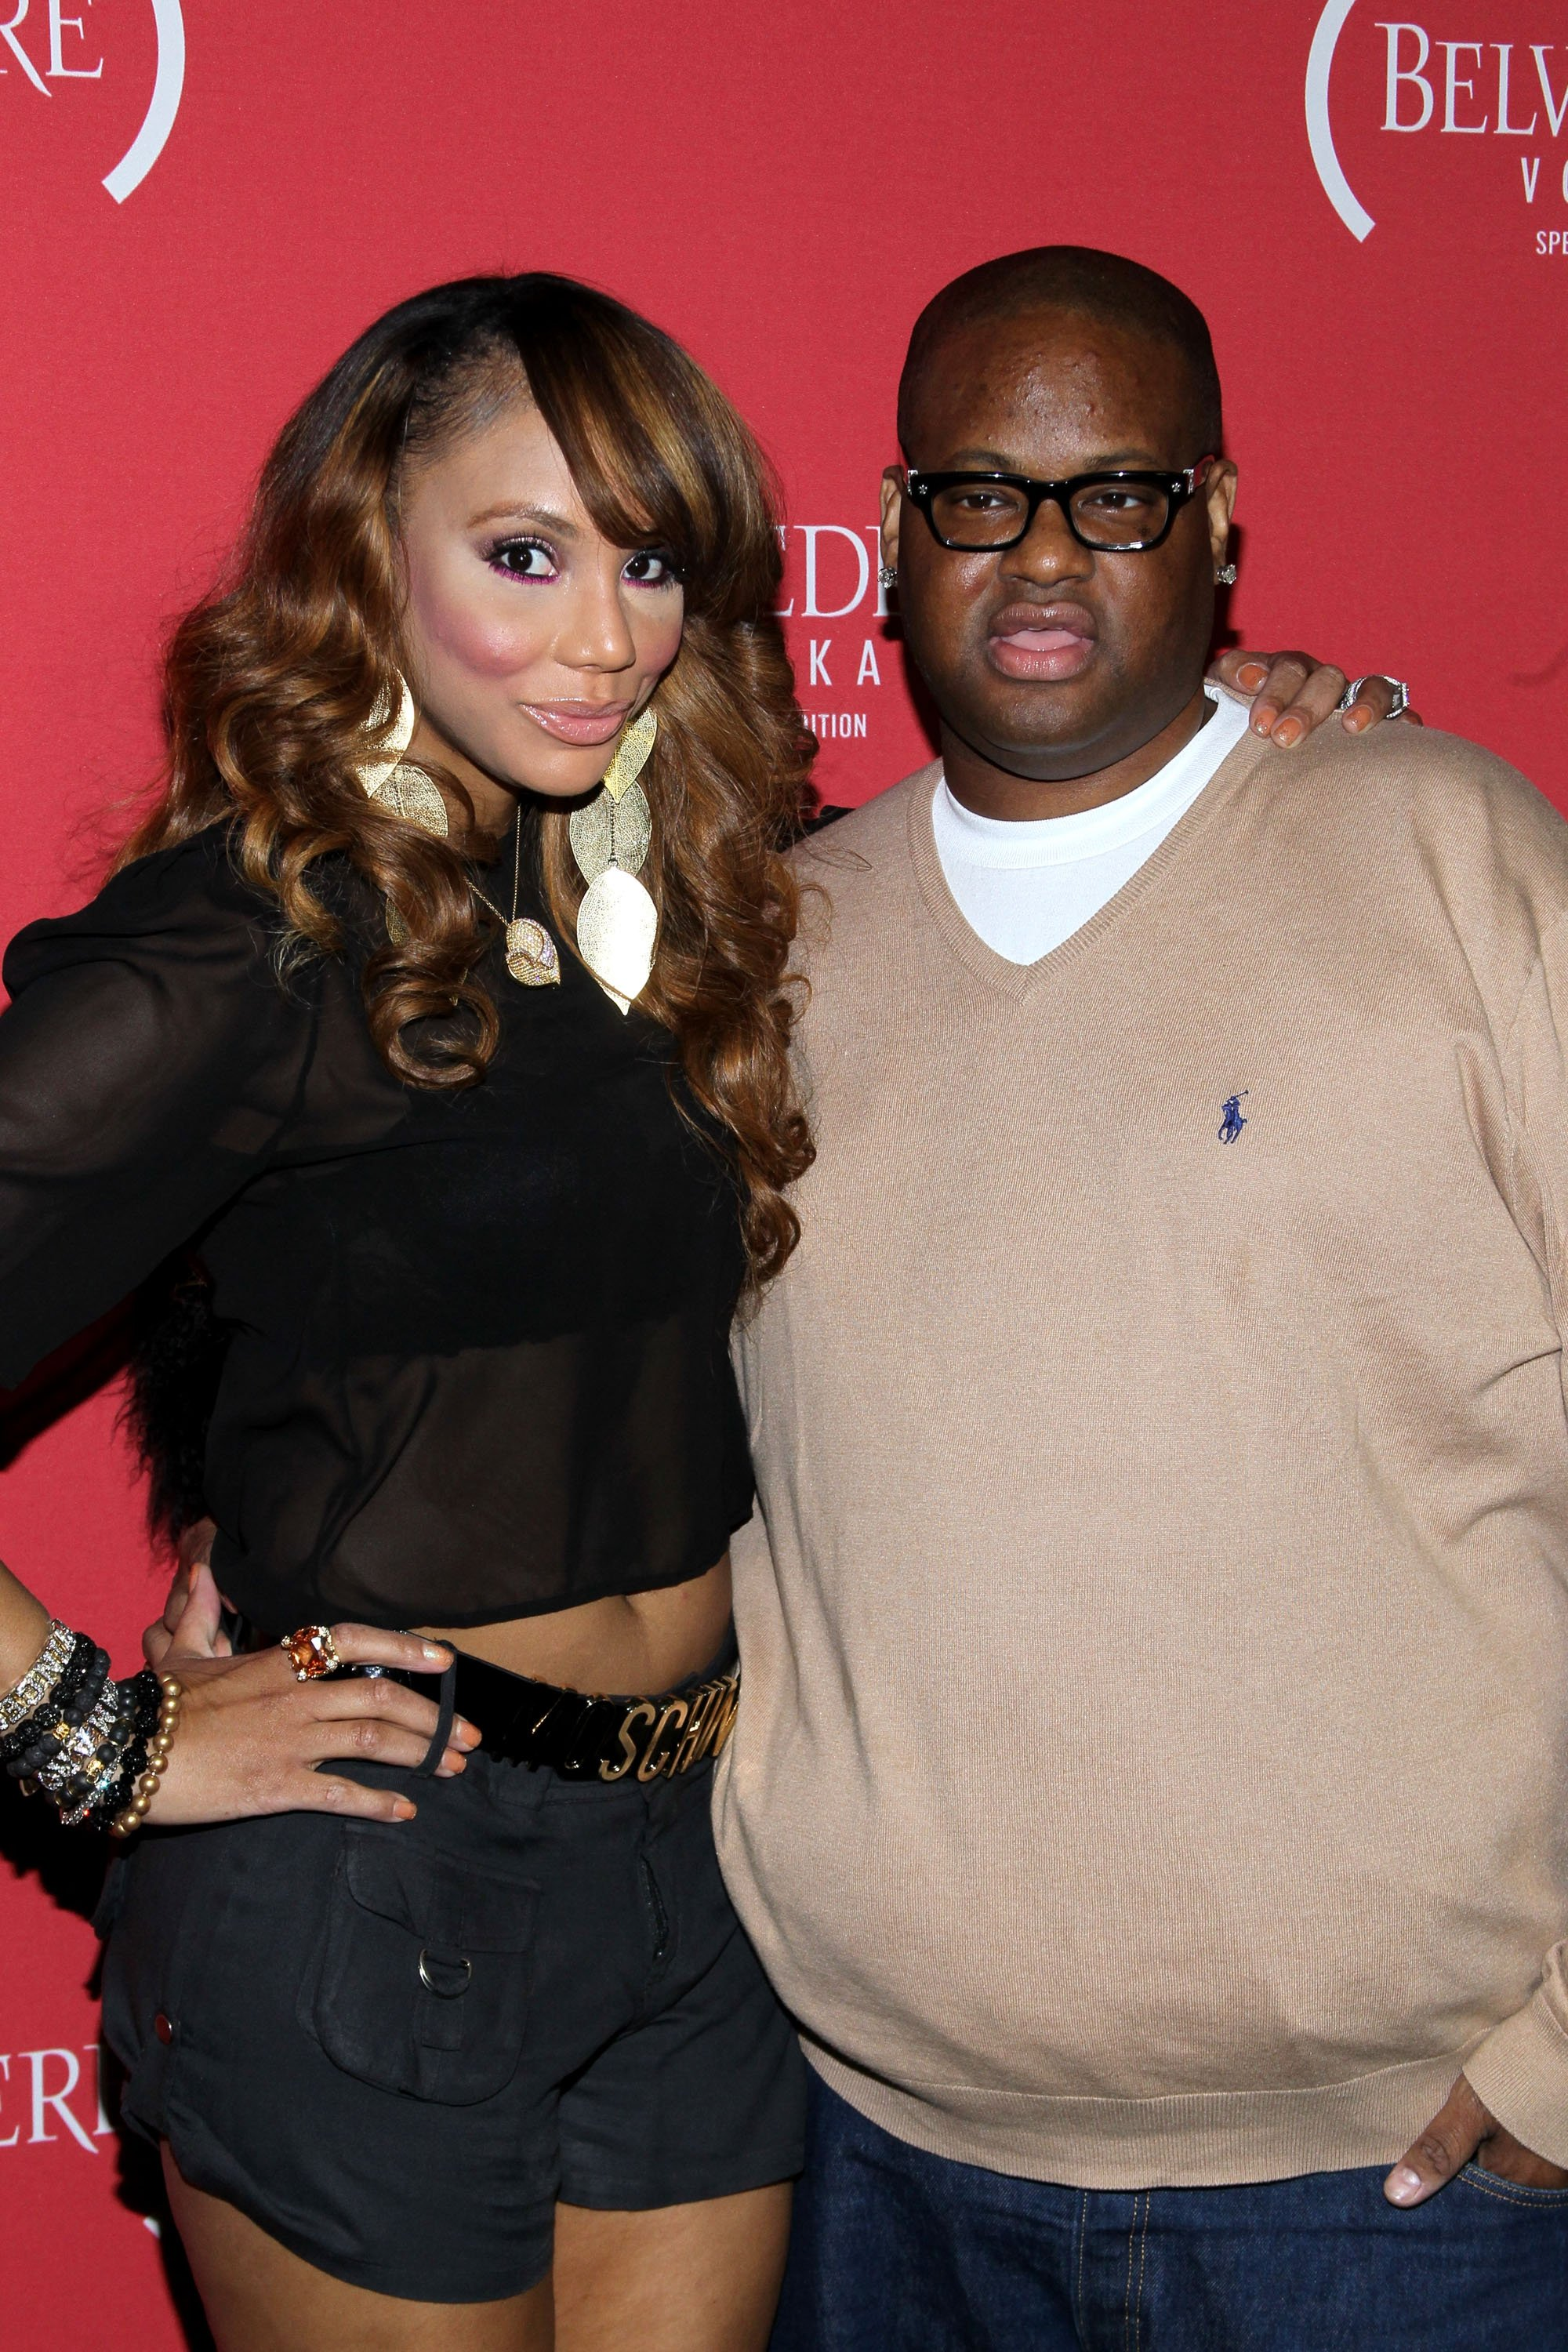 Tamar Braxton and Vincent Herbert at a Pre-Grammys party in February 2012. | Photo: Getty Images